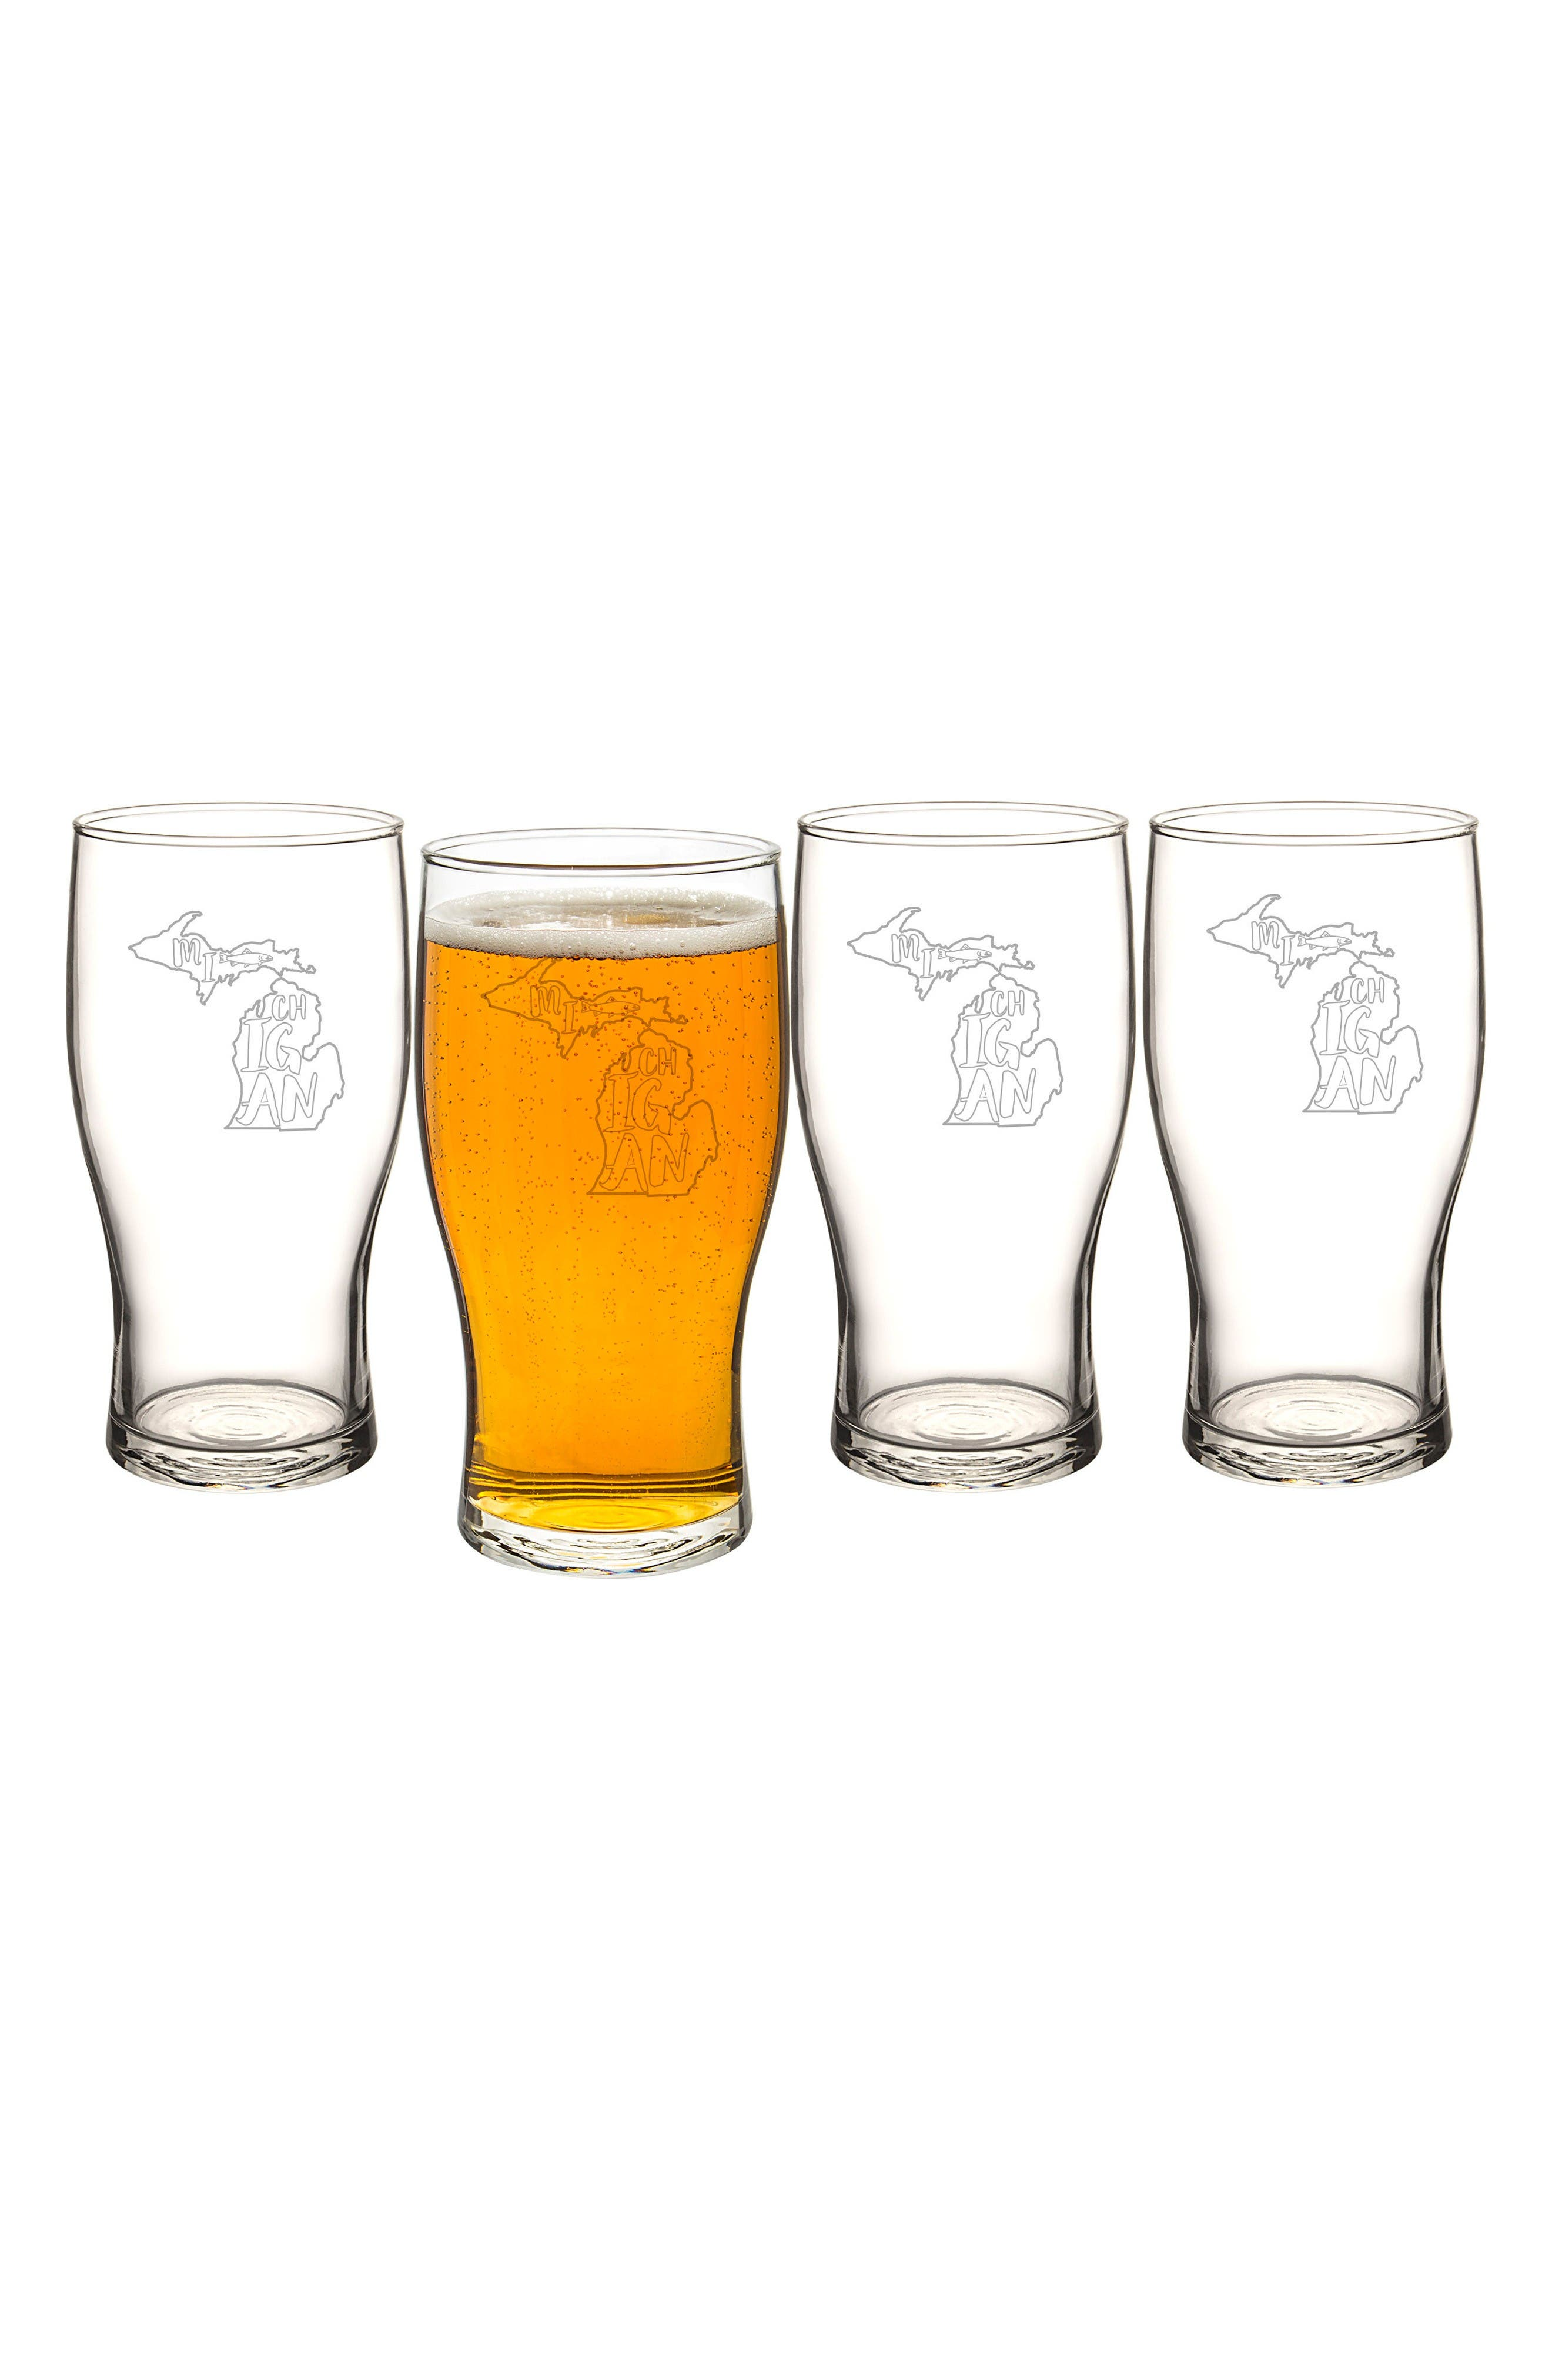 Cathy's Concepts State Set of 4 Pilsner Glasses